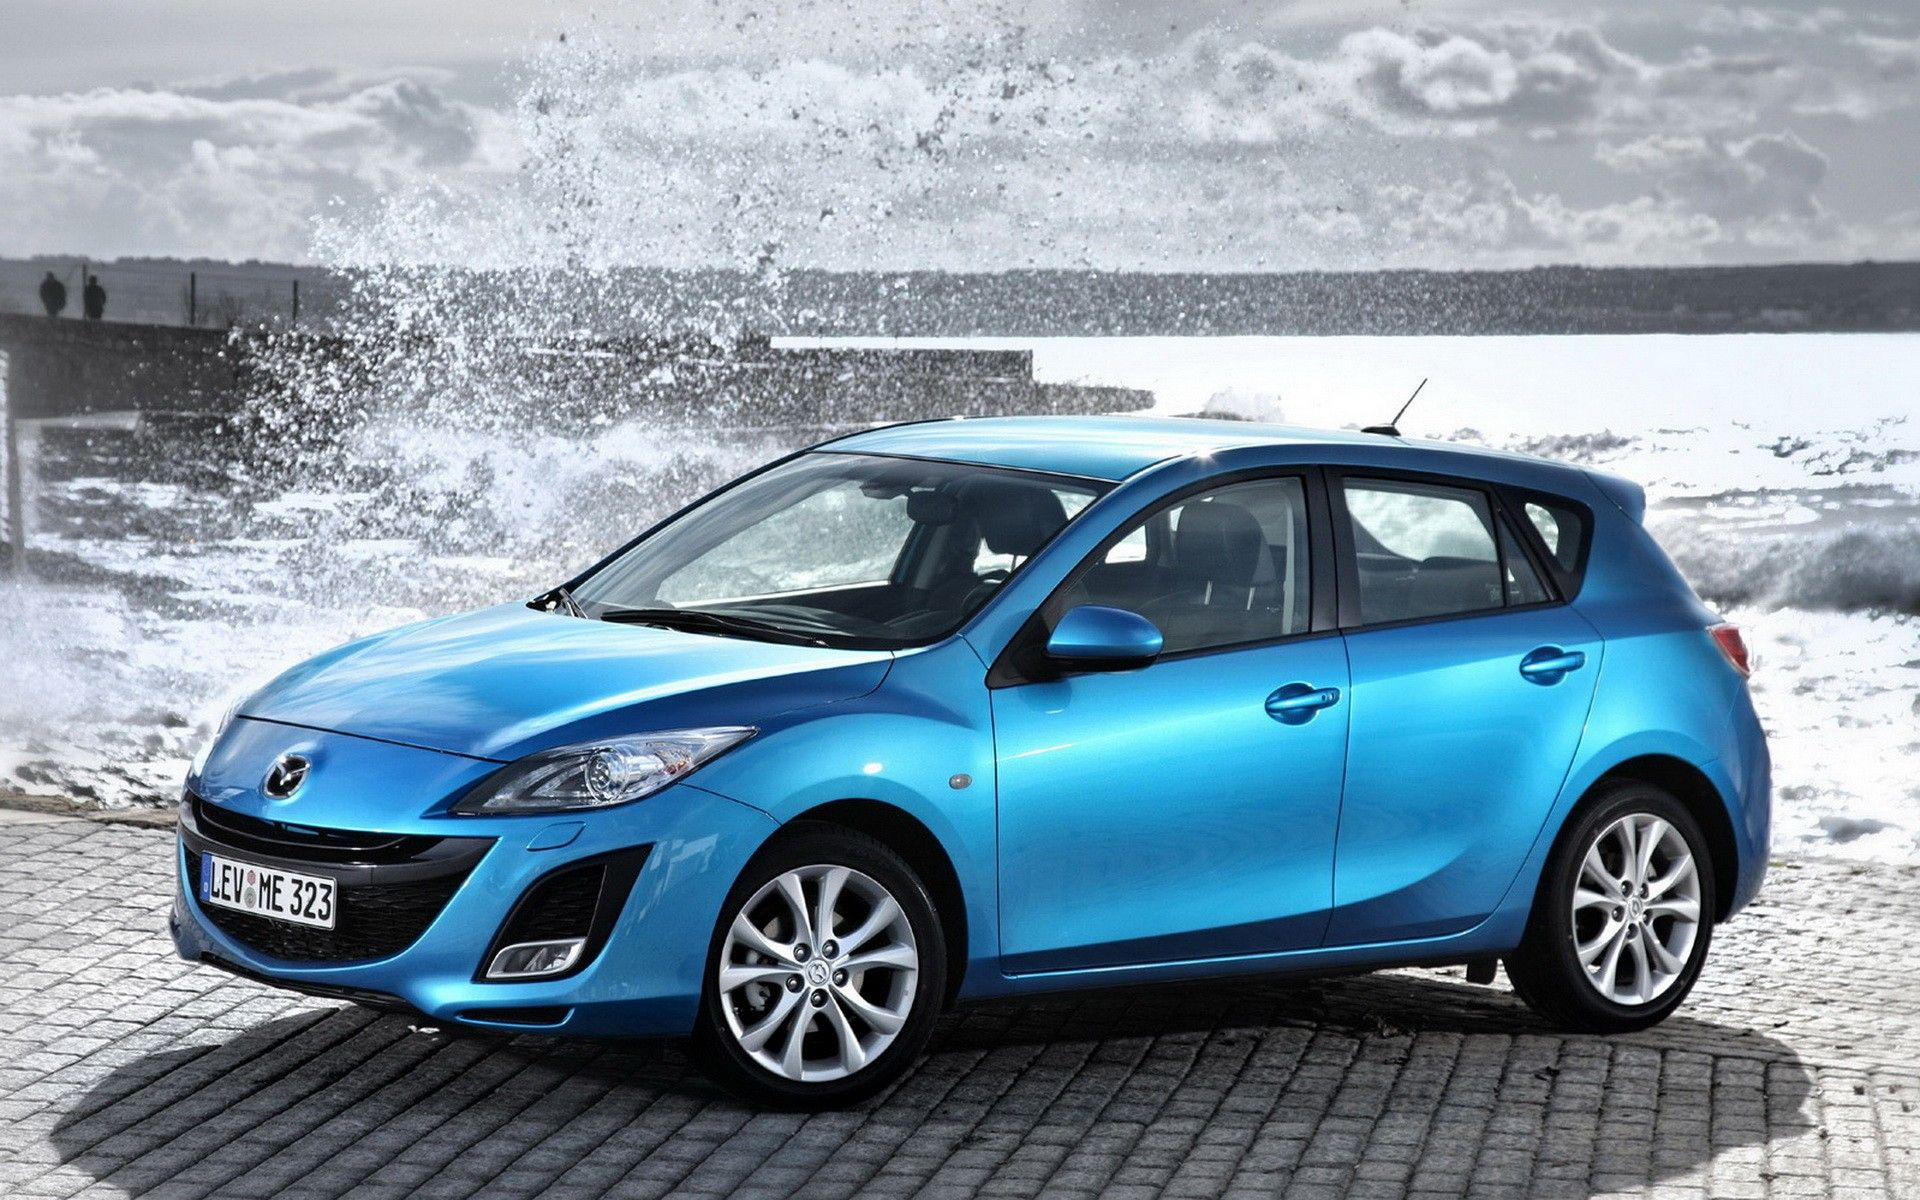 fond ecran voiture mazda 3 mzr 185 ch bleu wallpaper hd blue car mazda rainbow pinterest. Black Bedroom Furniture Sets. Home Design Ideas